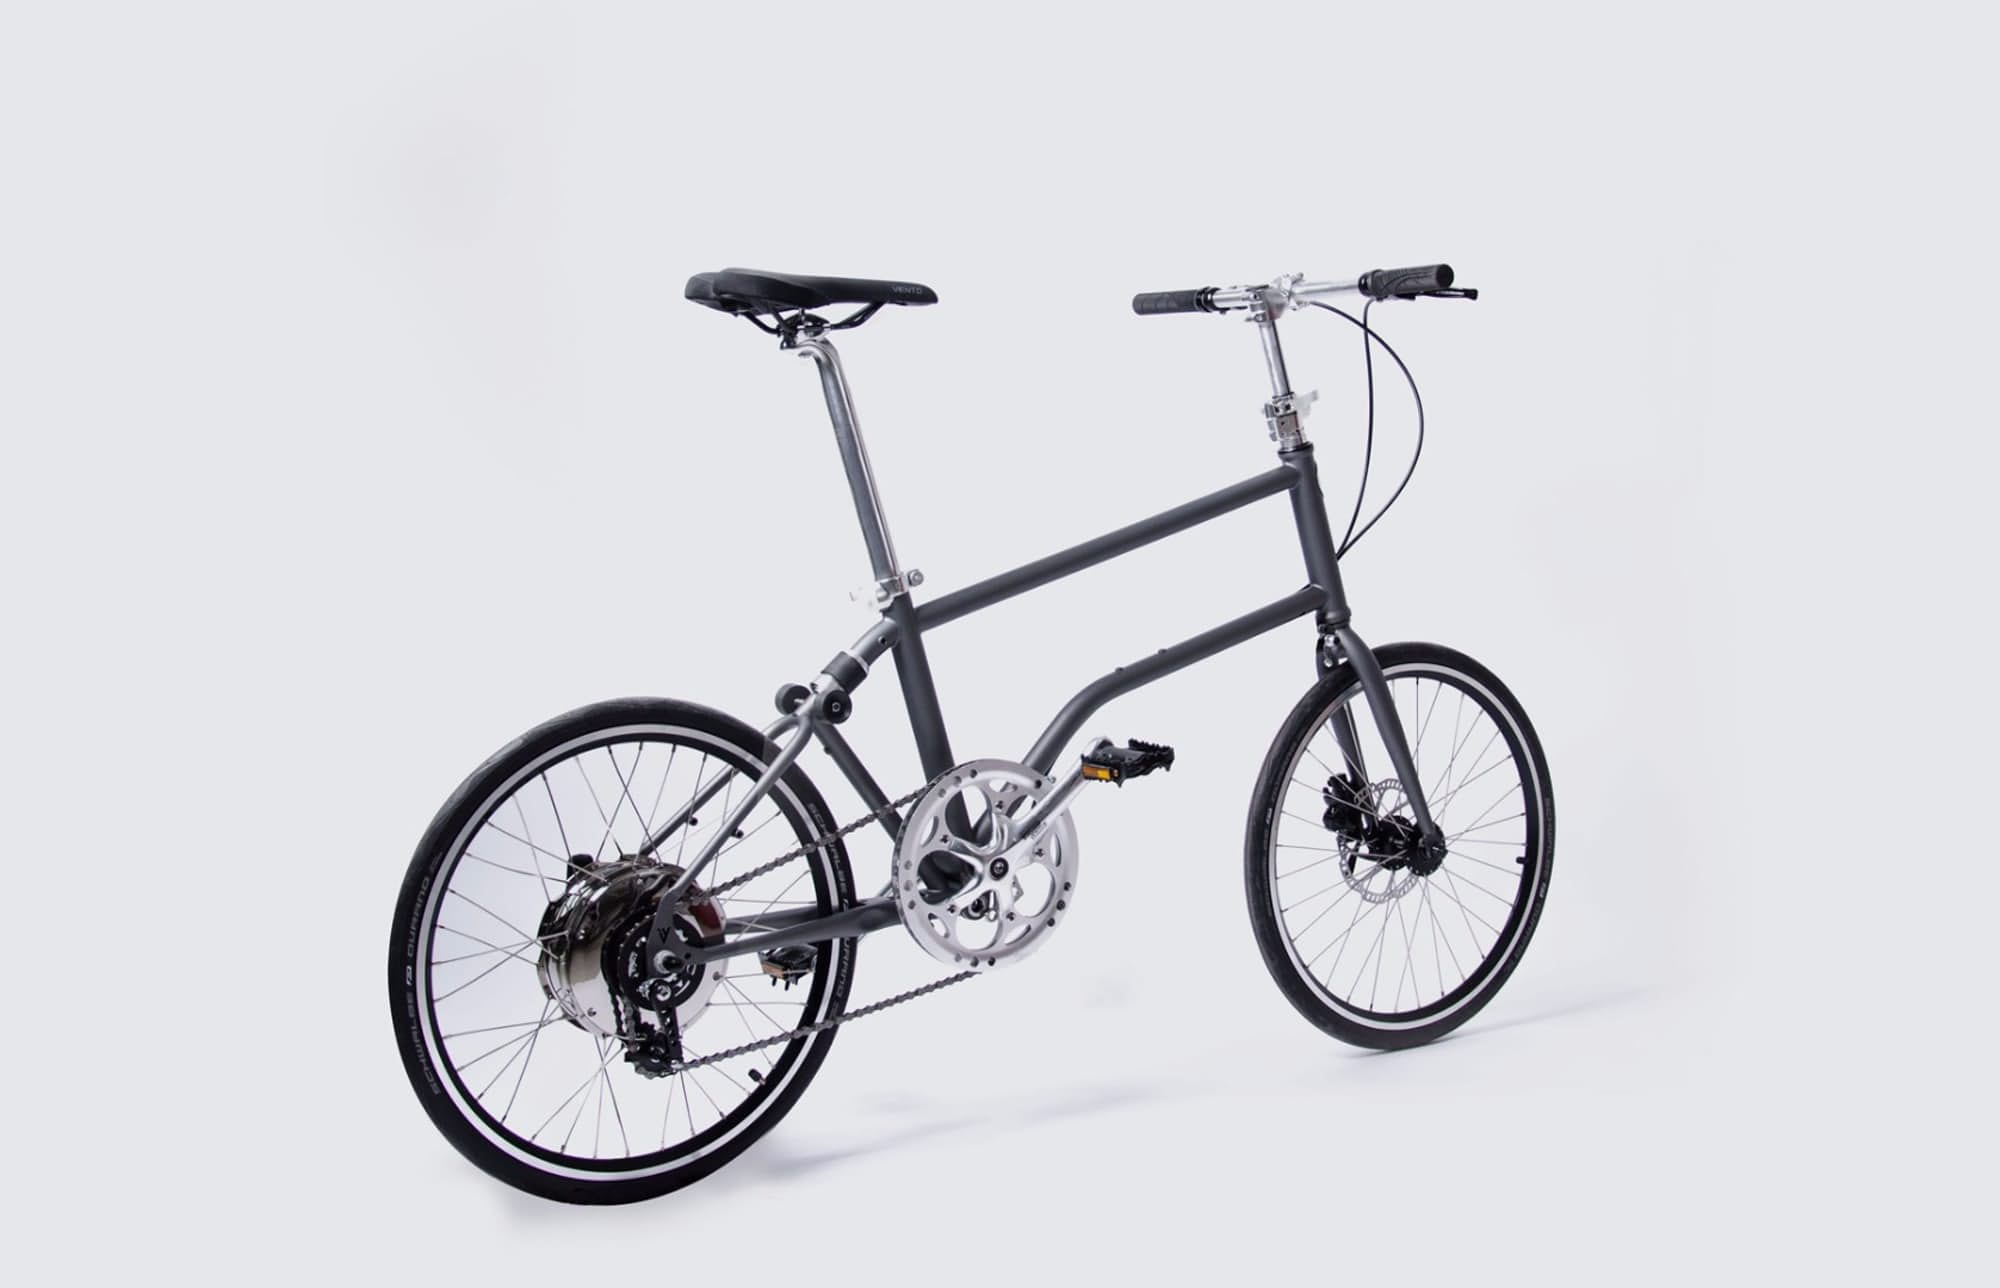 The Vello Bike Is The World S First Self Charging